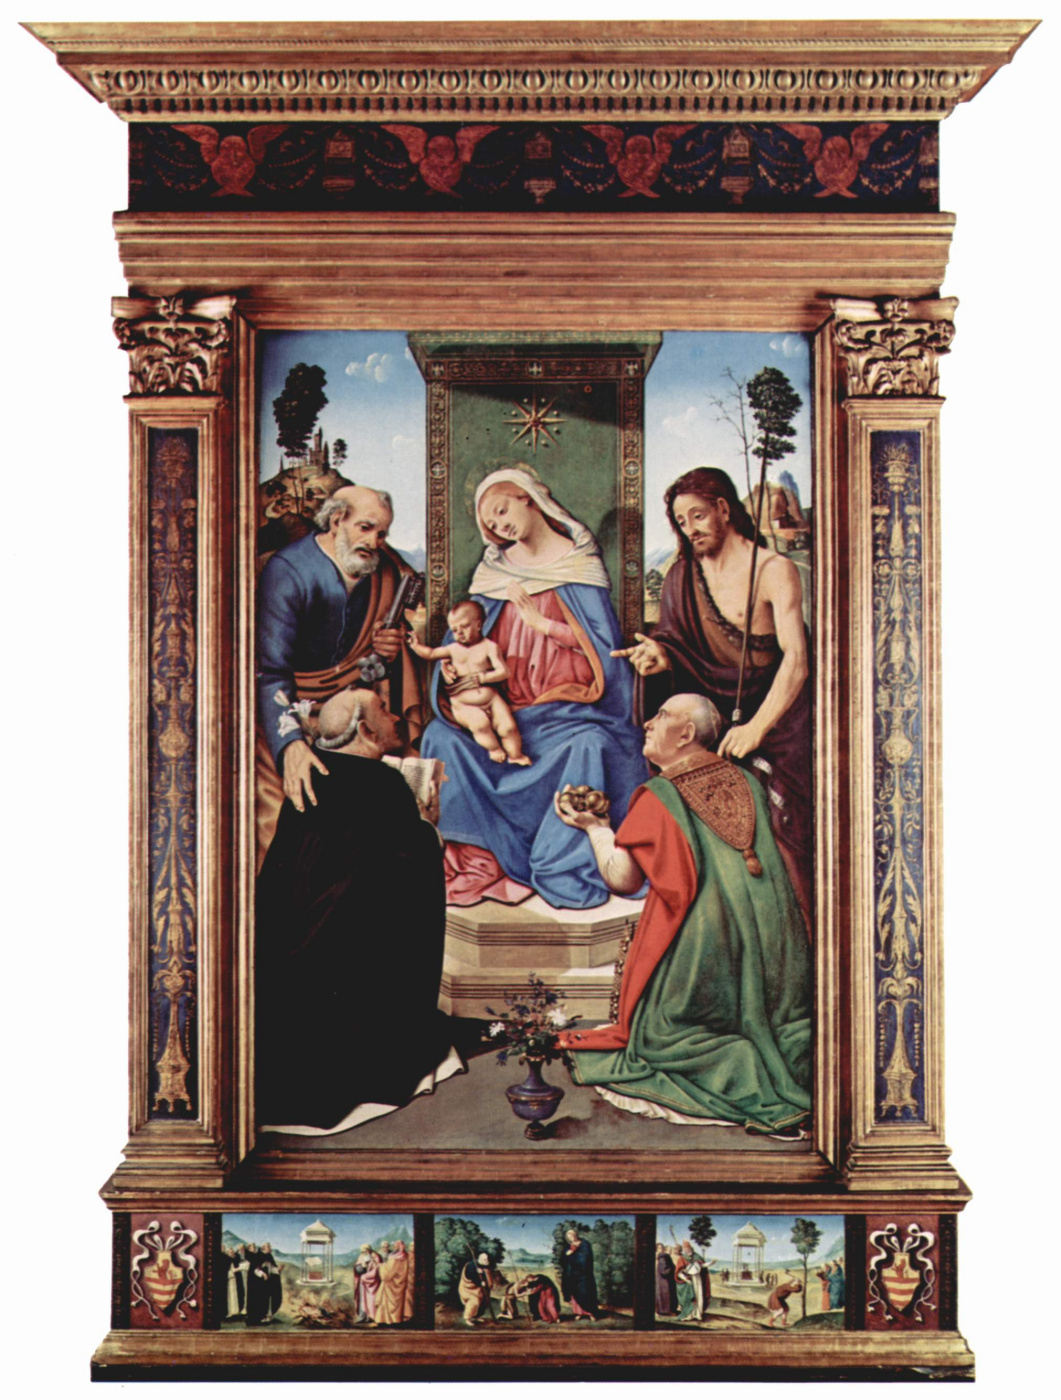 Piero di Cosimo. The Altar Pugliese. Madonna enthroned, the Apostle Peter, John the Baptist, St. Nicholas of Bari and St. Dominic, General view with predelay